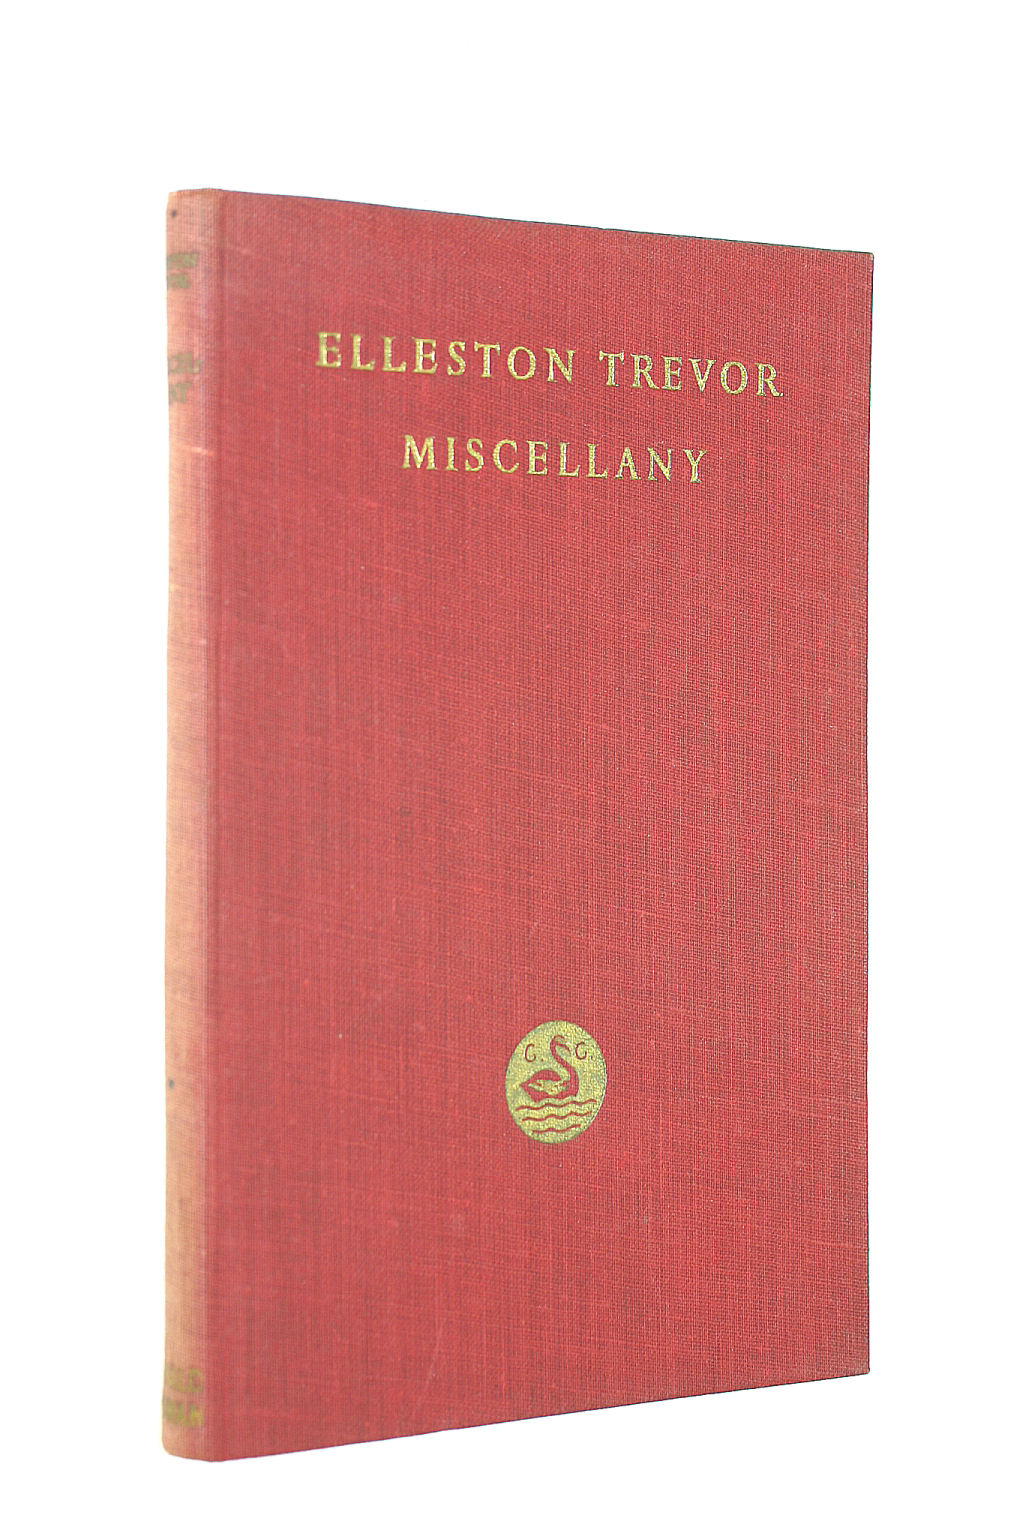 Image for Elleston Trevor Miscellany